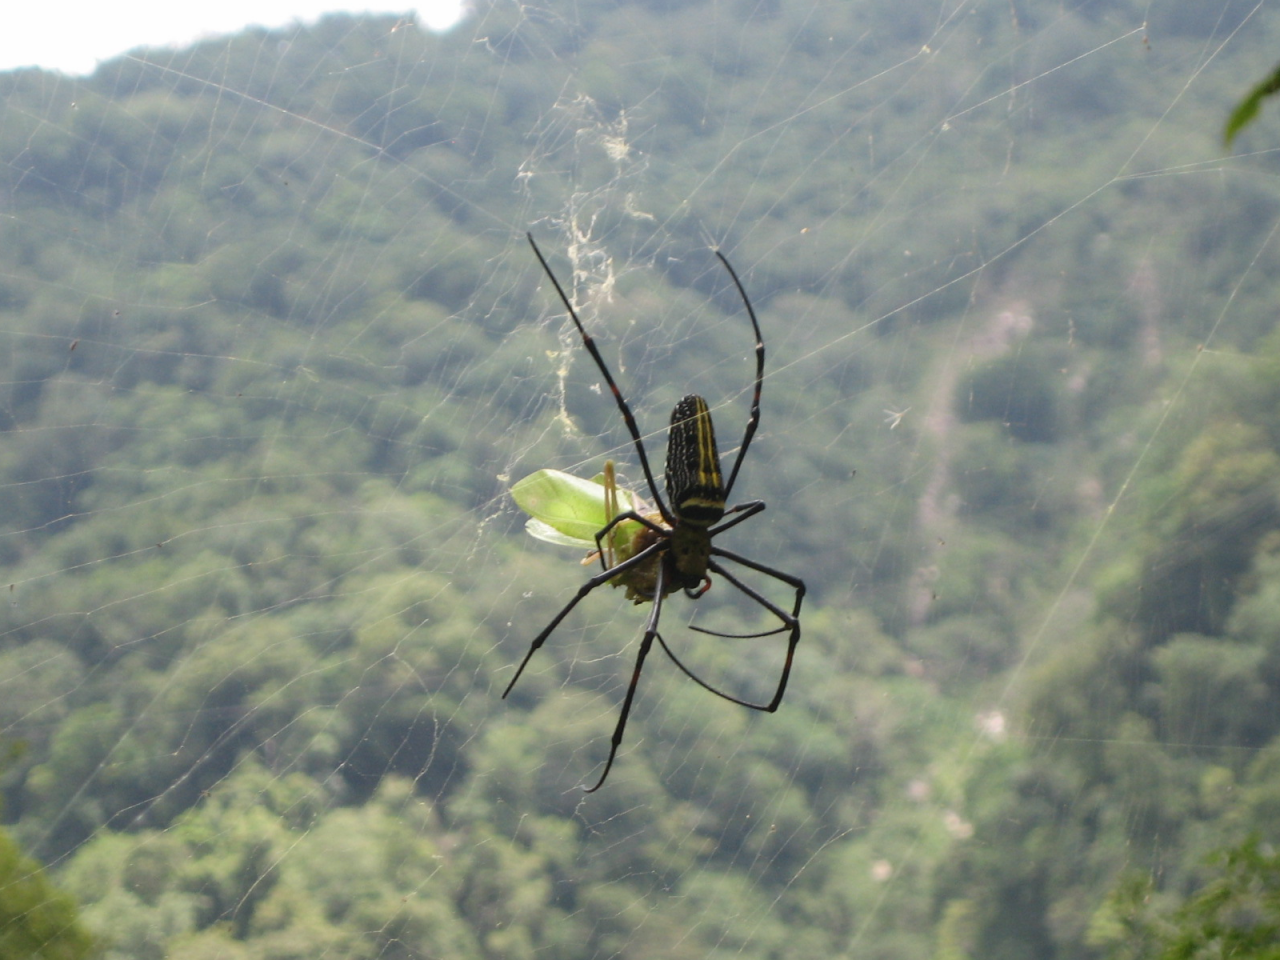 Spider in Taiwan